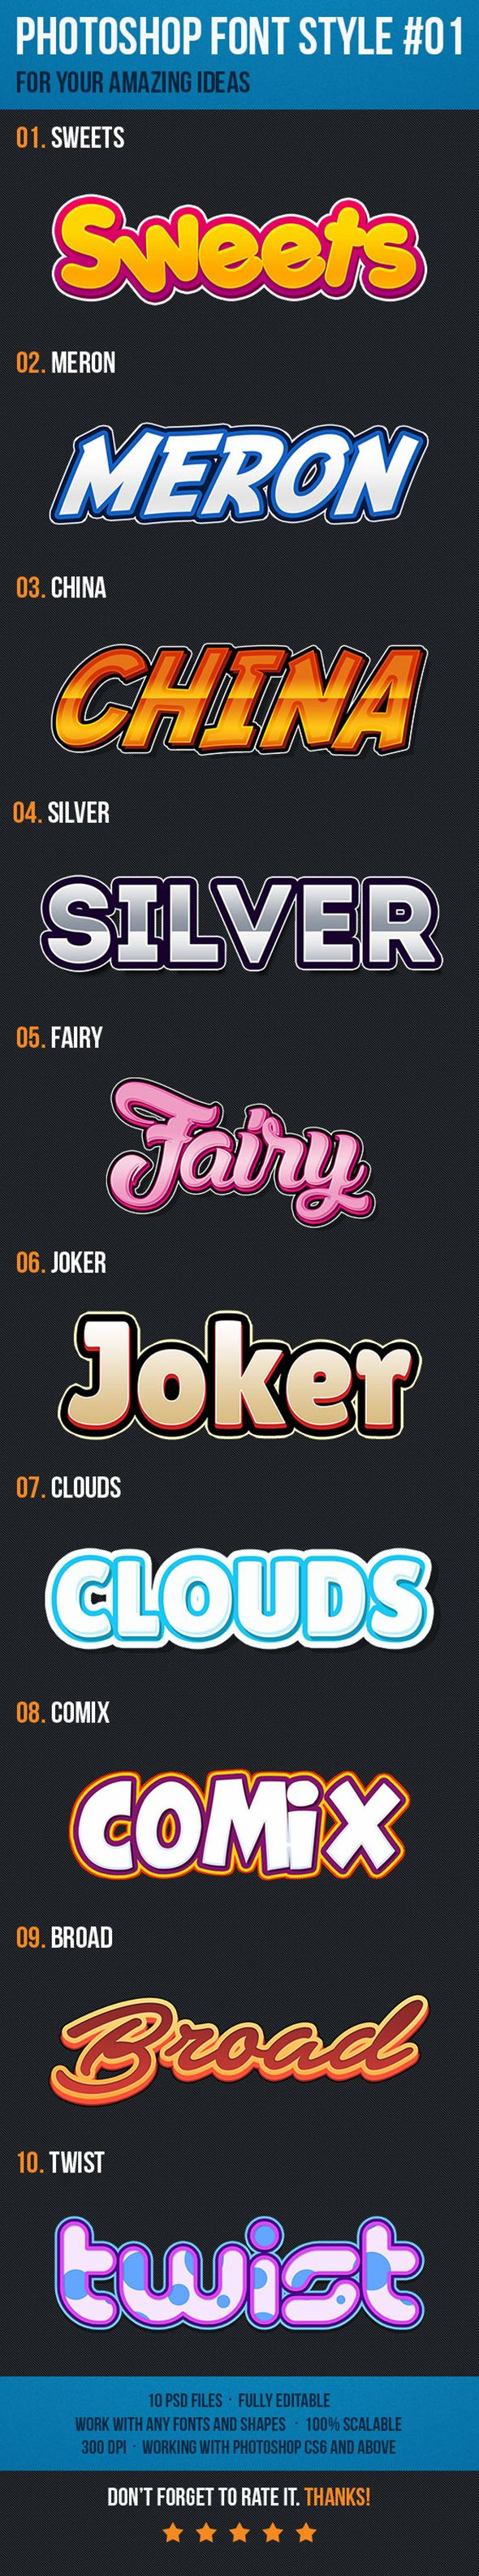 10 Font Style for Logo. Download here: http://graphicriver.net/item/10-font-style-for-game-logo-01/15093414?ref=ksioks